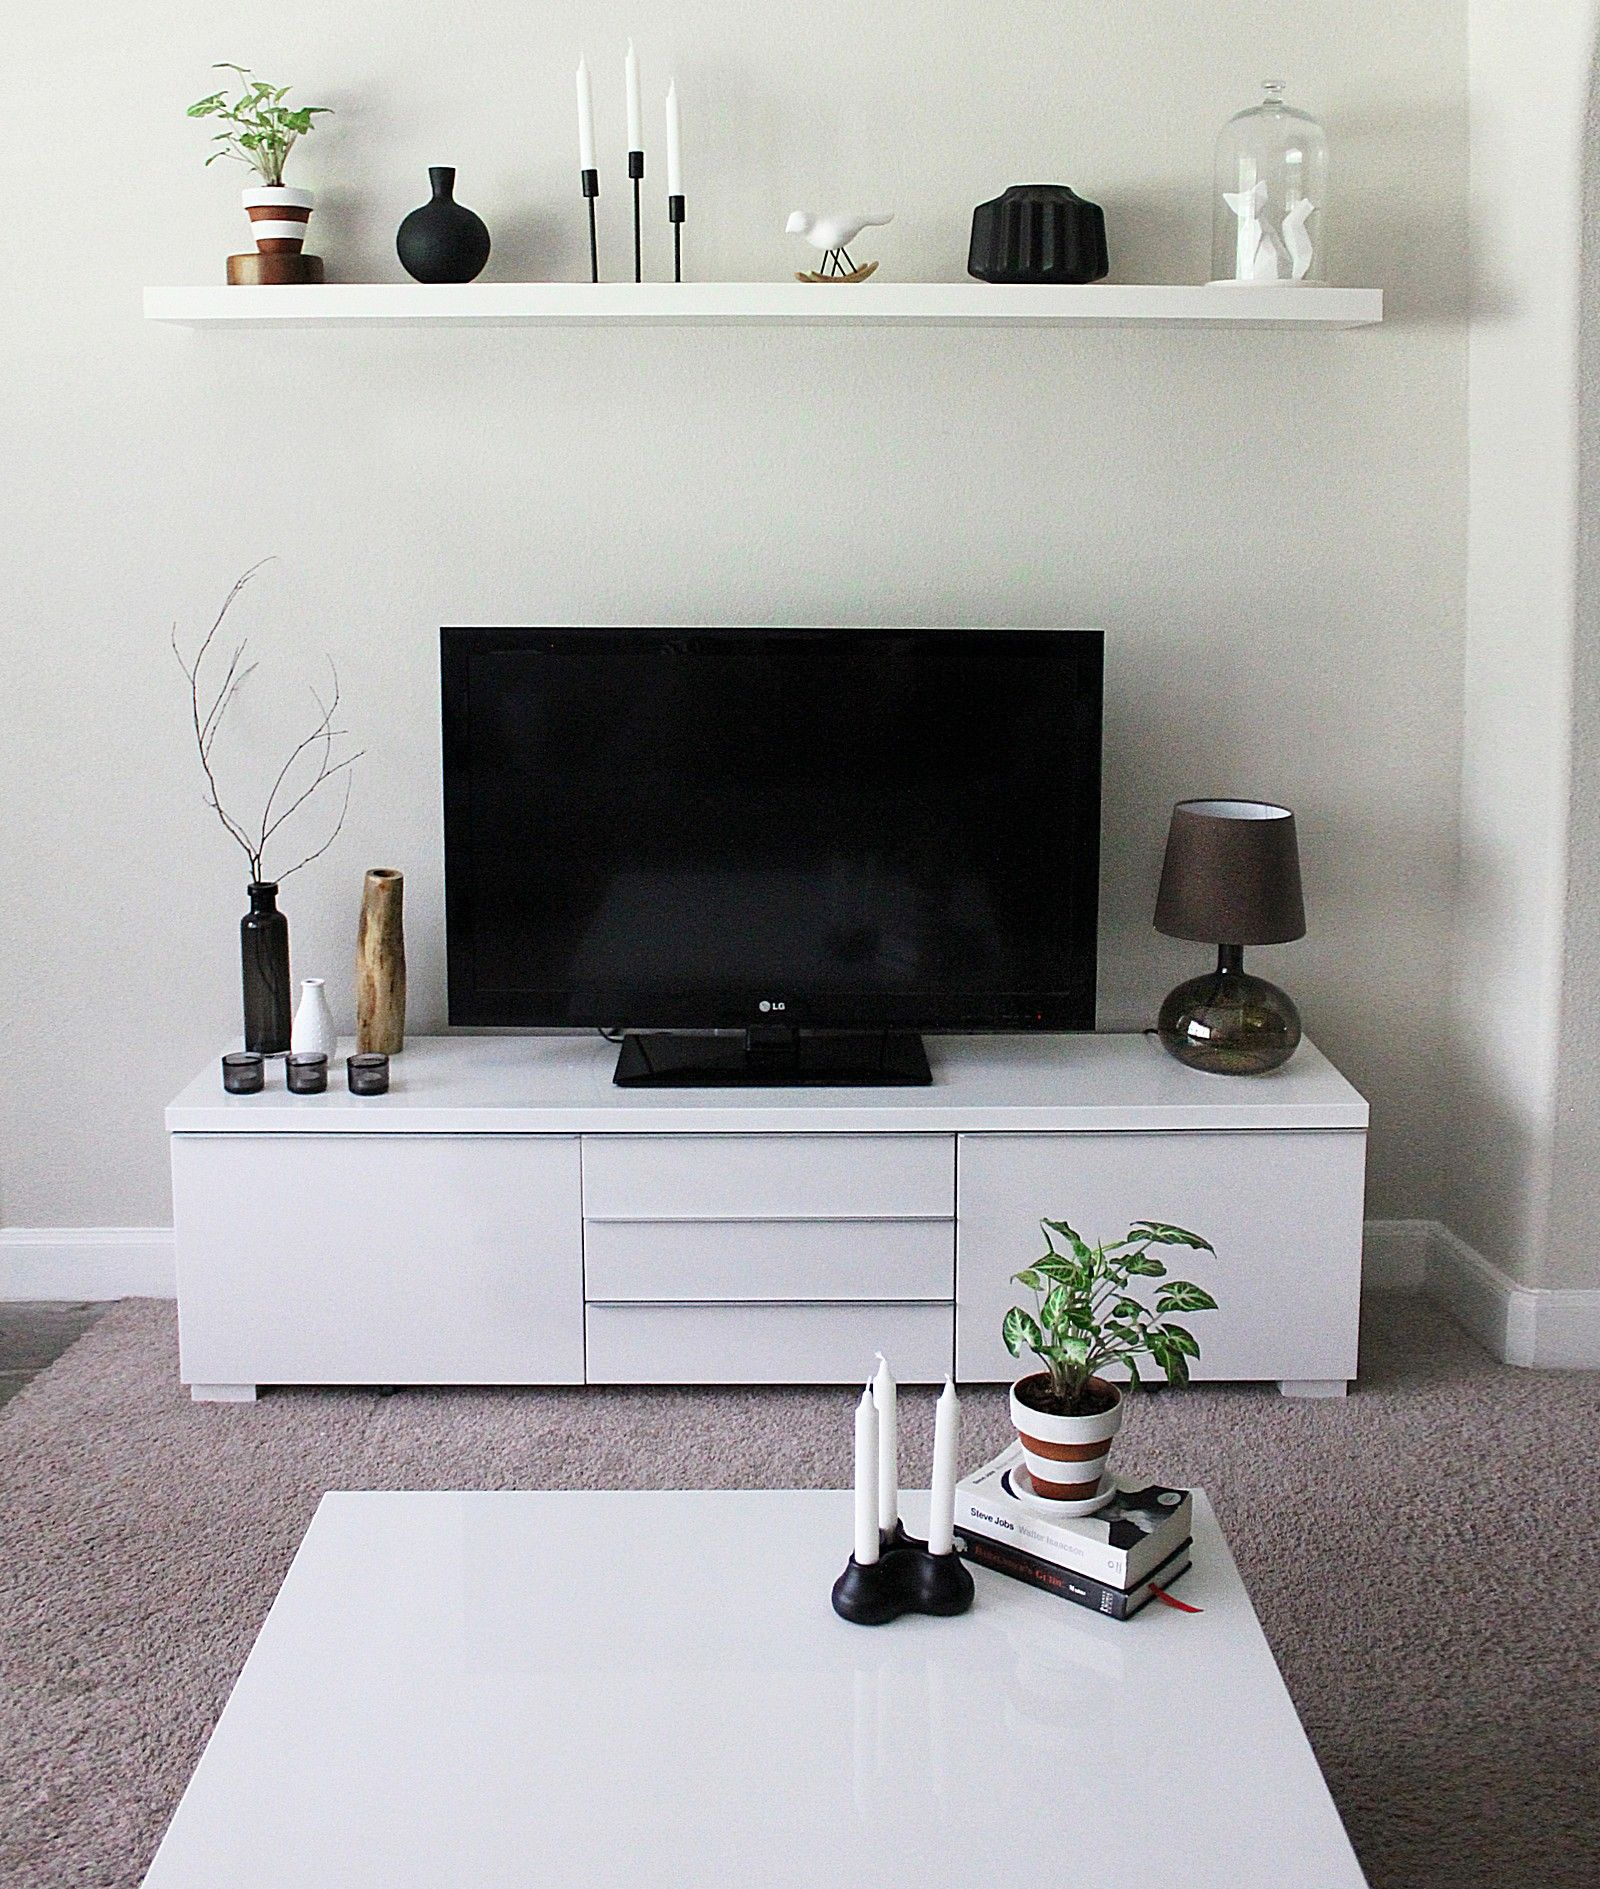 Minimalist Tv Stand And Cabinet Ikea Besta Interiors Design Ideas